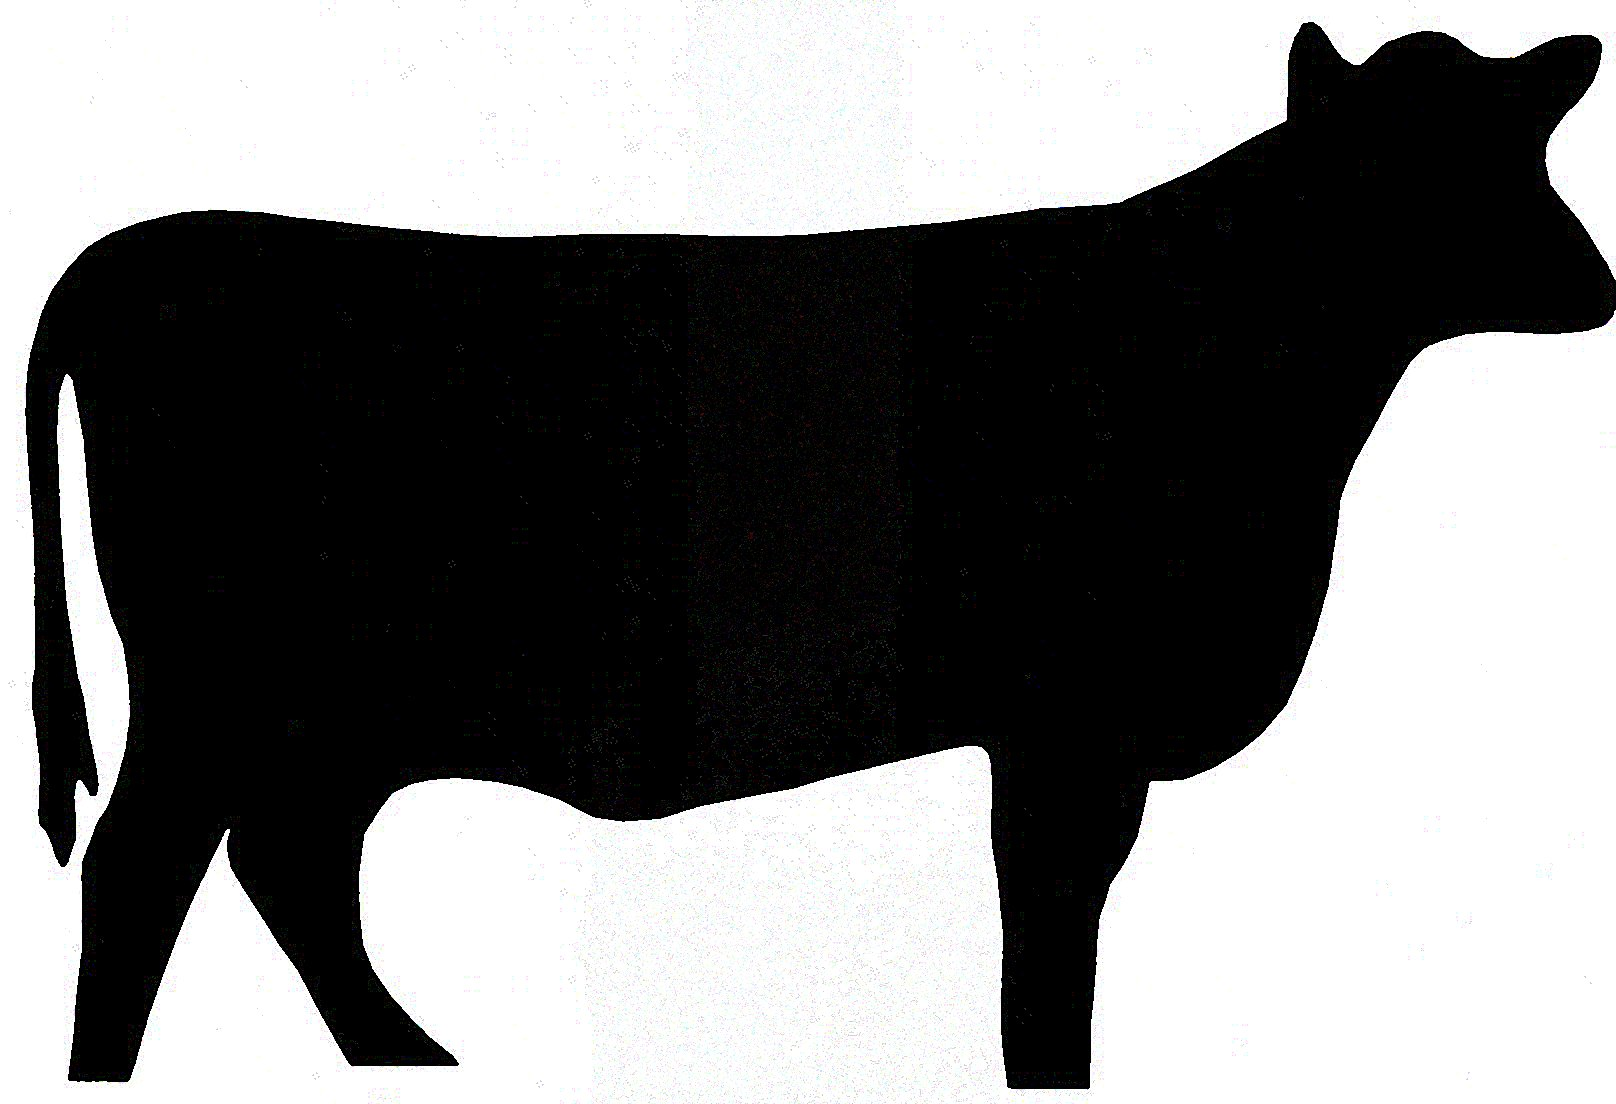 Cow Head Silhouette Clip Art   Clipart Panda   Free Clipart Images